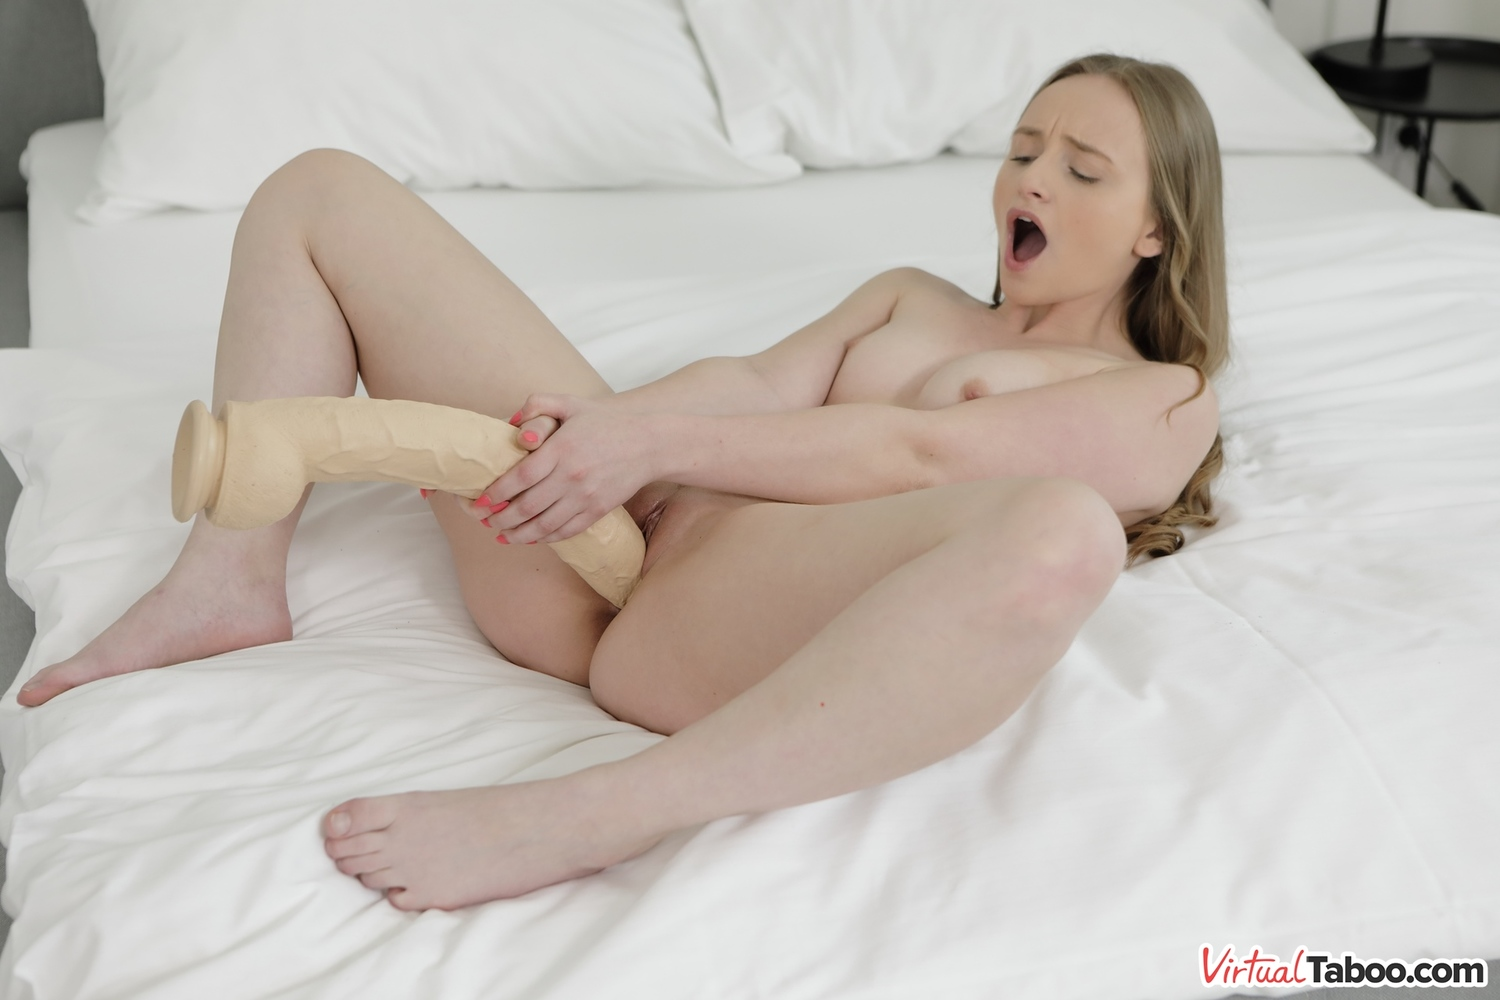 Petite Girl Feeding Her Pussy With Monster Dildo Porn A0-1755